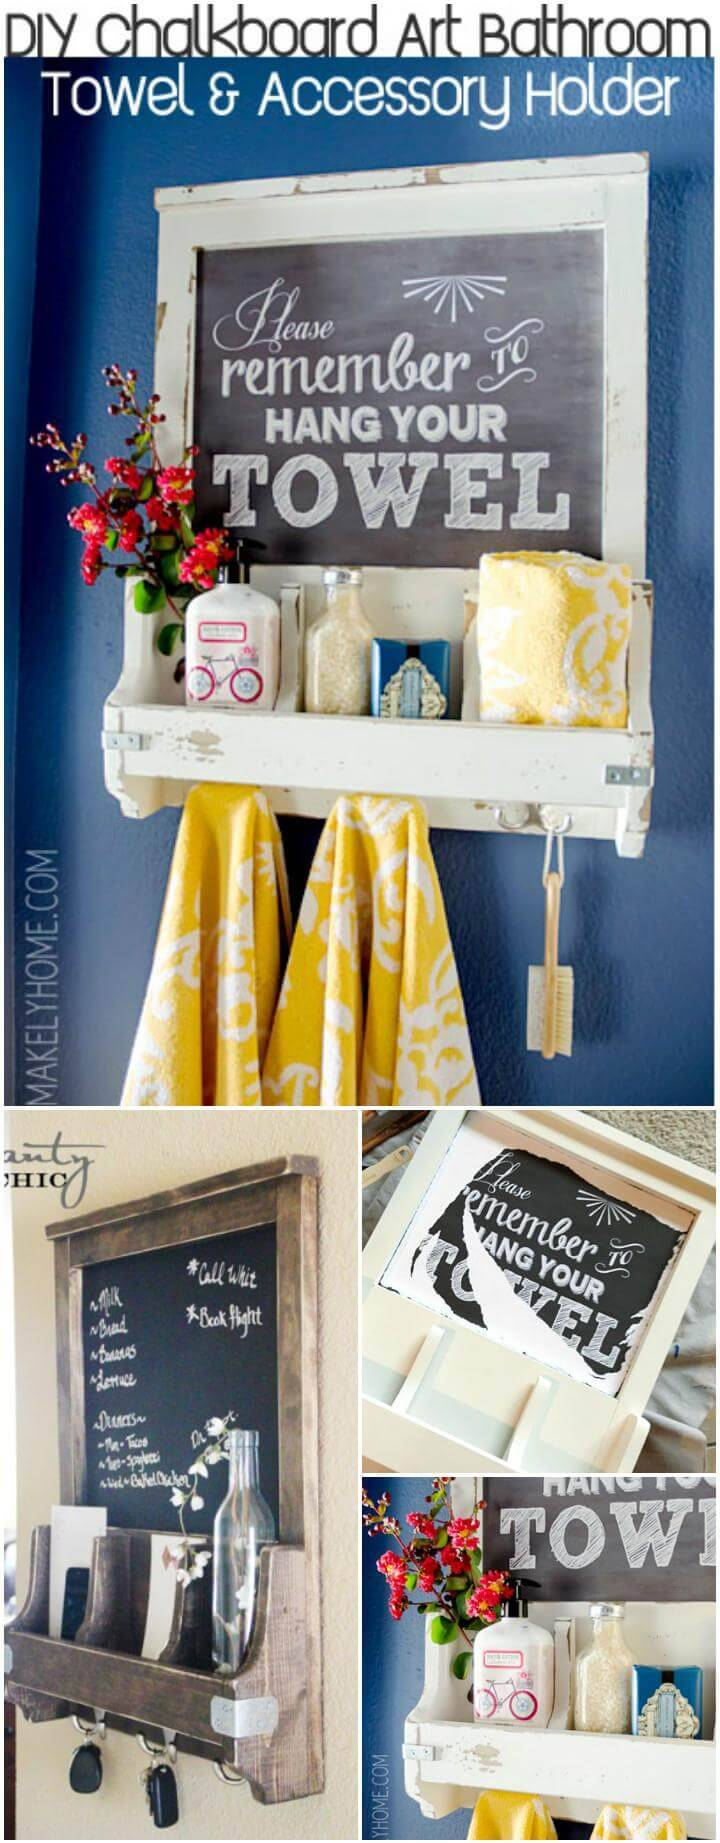 handmade chalkboard art towel rack and bathroom accessory organizer